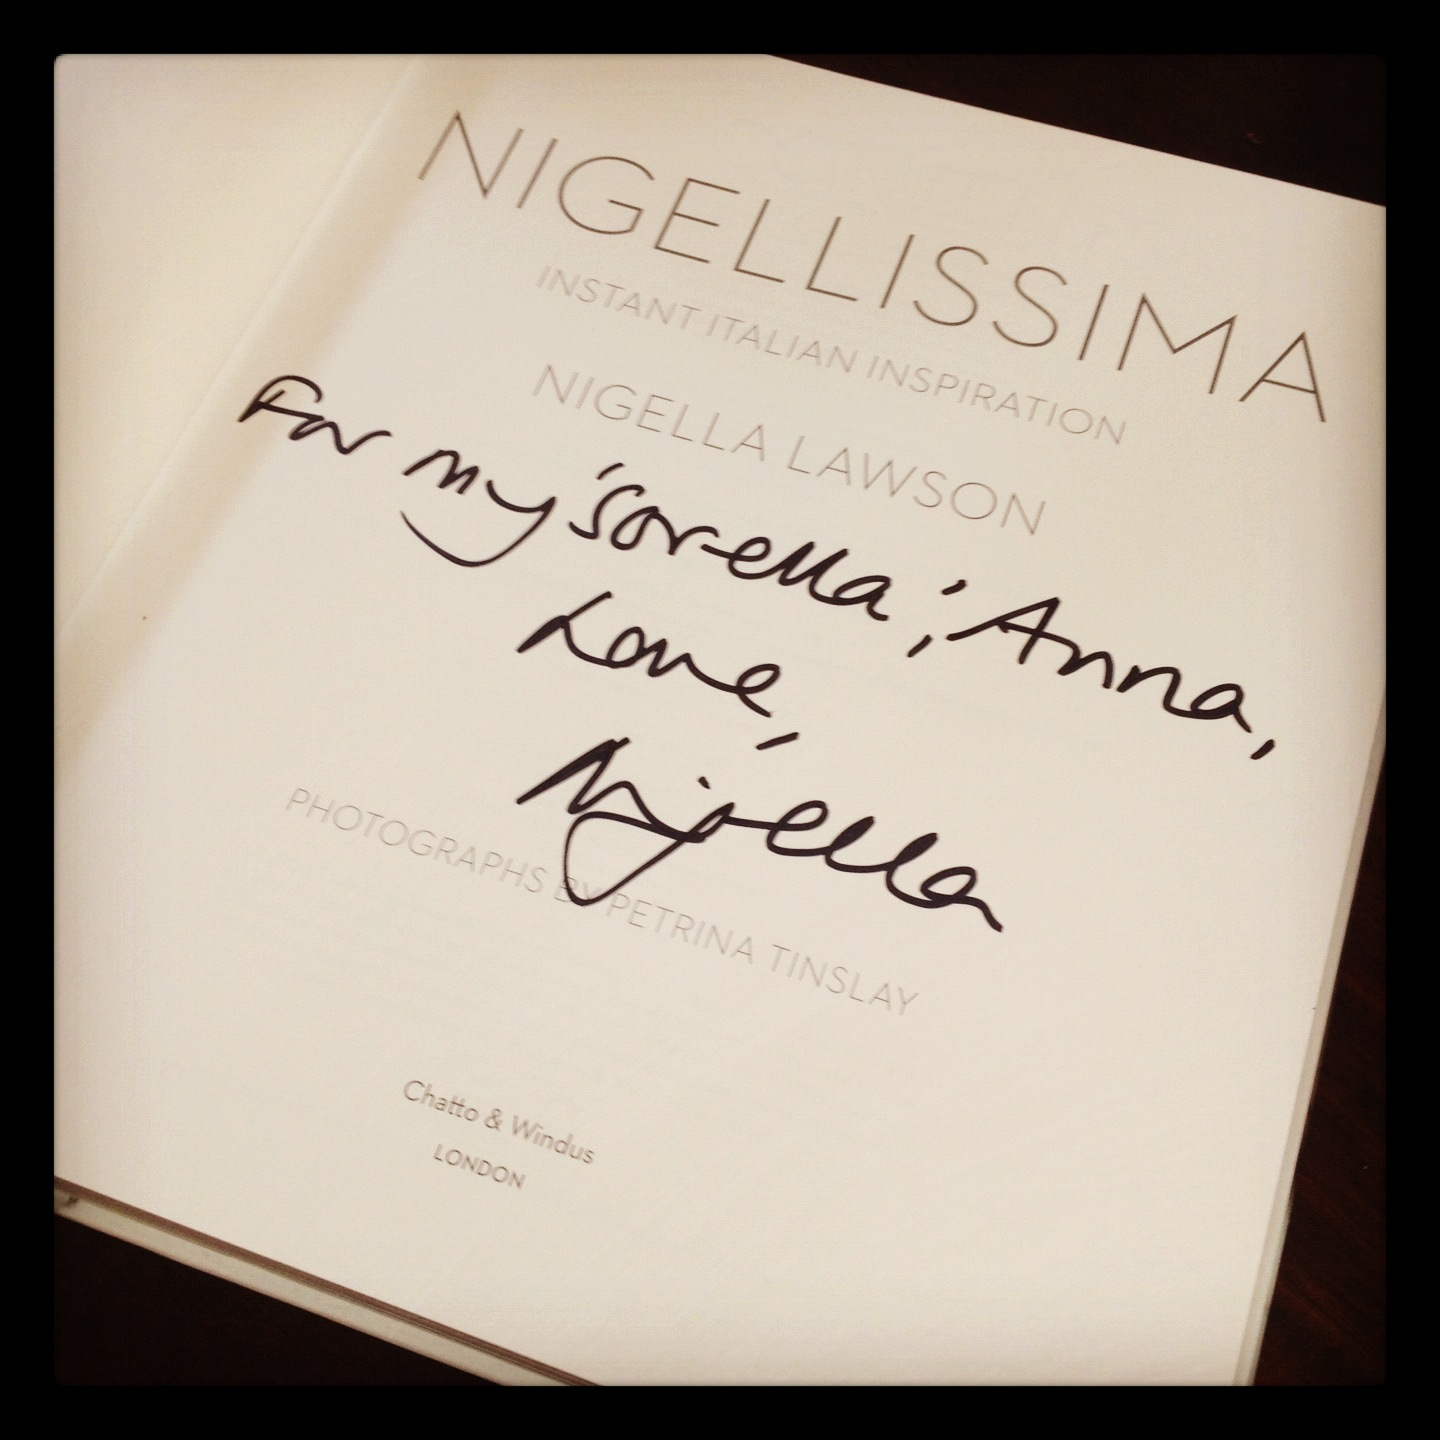 I LOVE being Nigella's 'sorella' (sister)